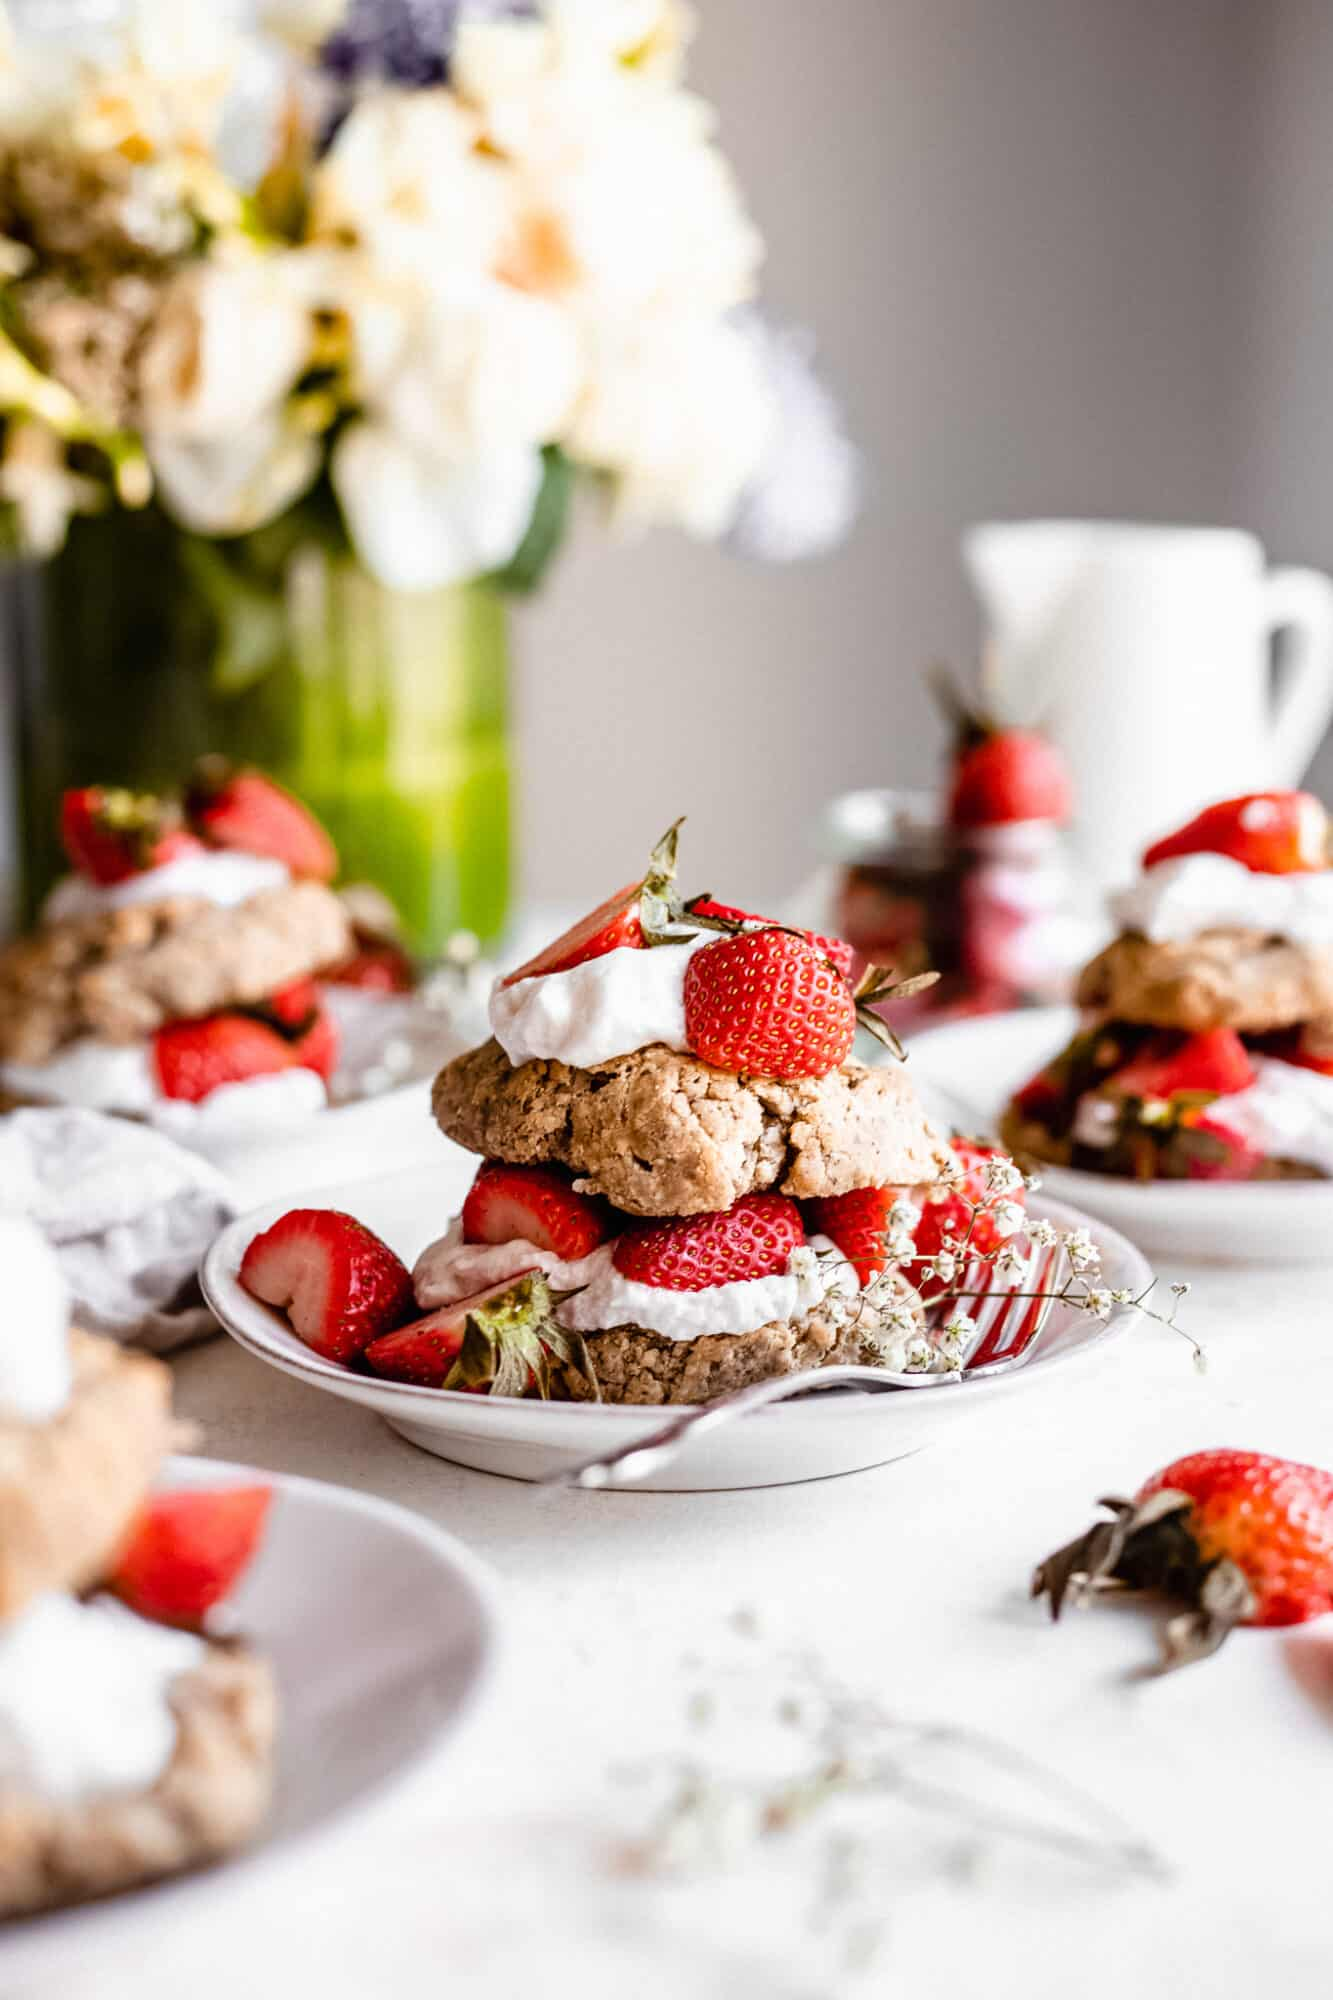 strawberry shortcakes on plate